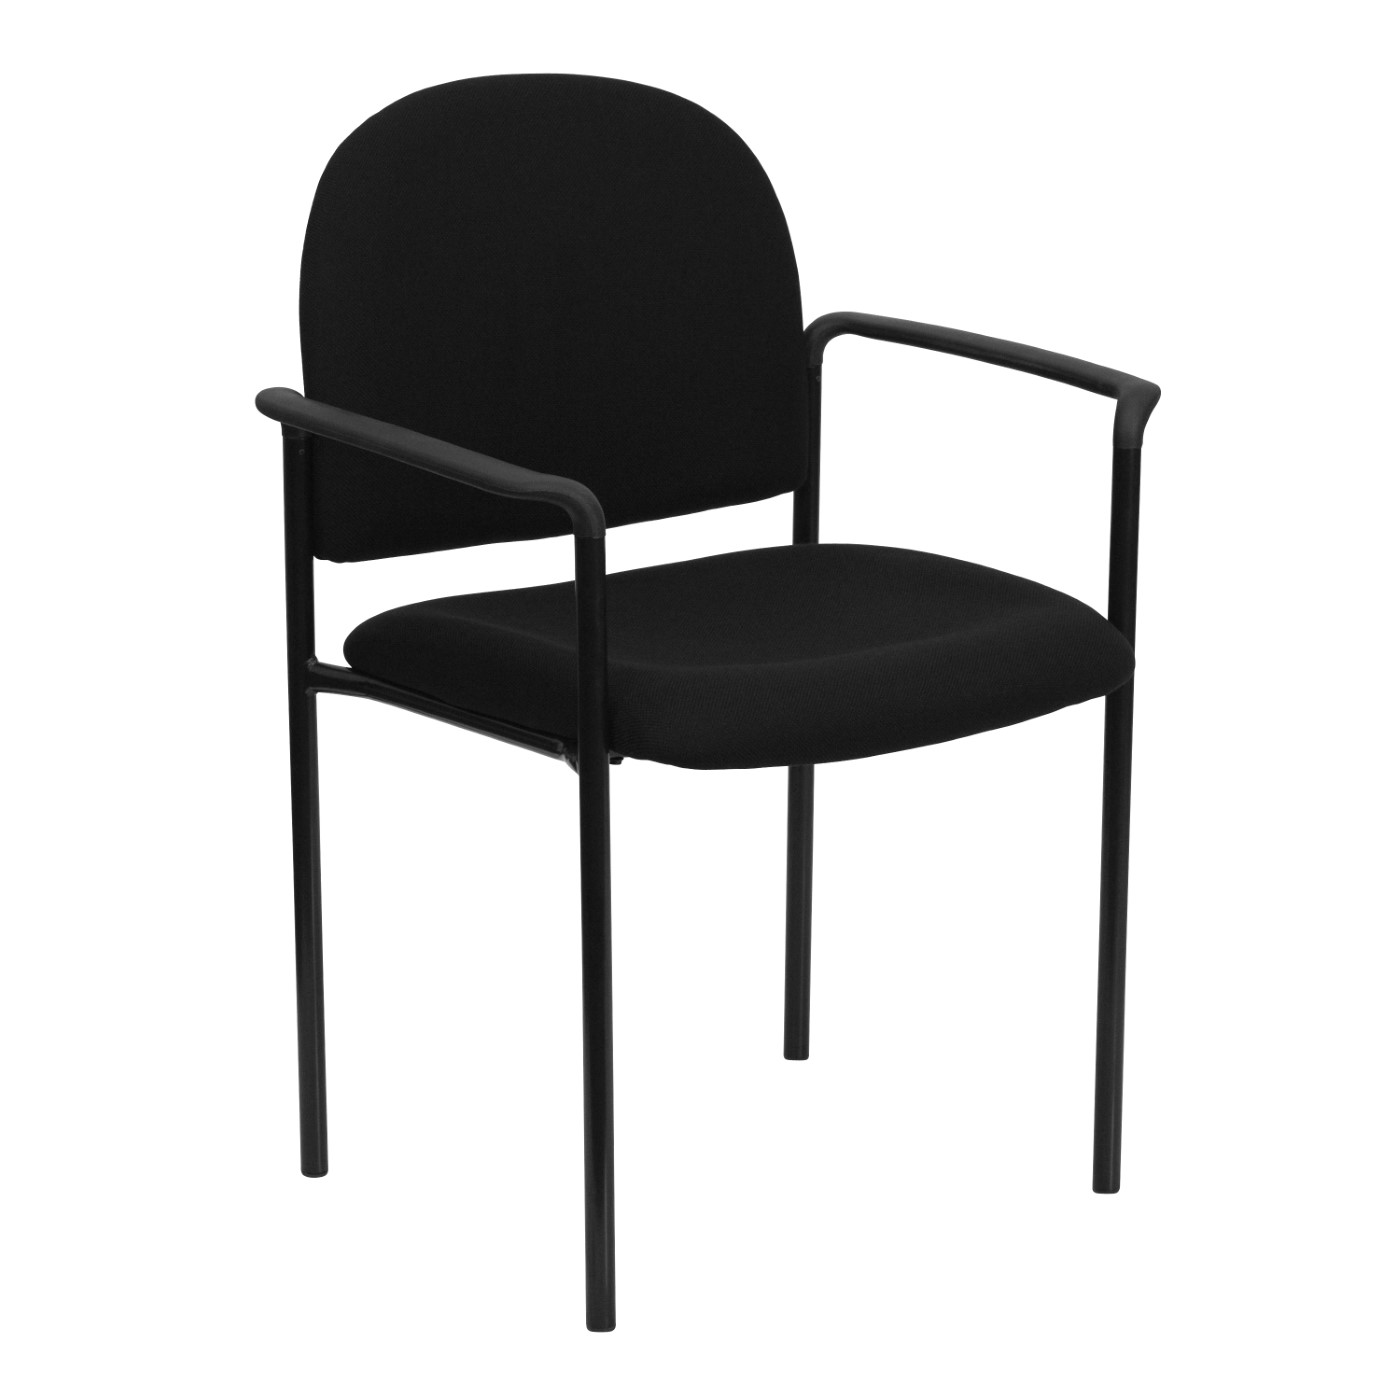 Comfort Black Fabric Stackable Steel Side Reception Chair with Arms